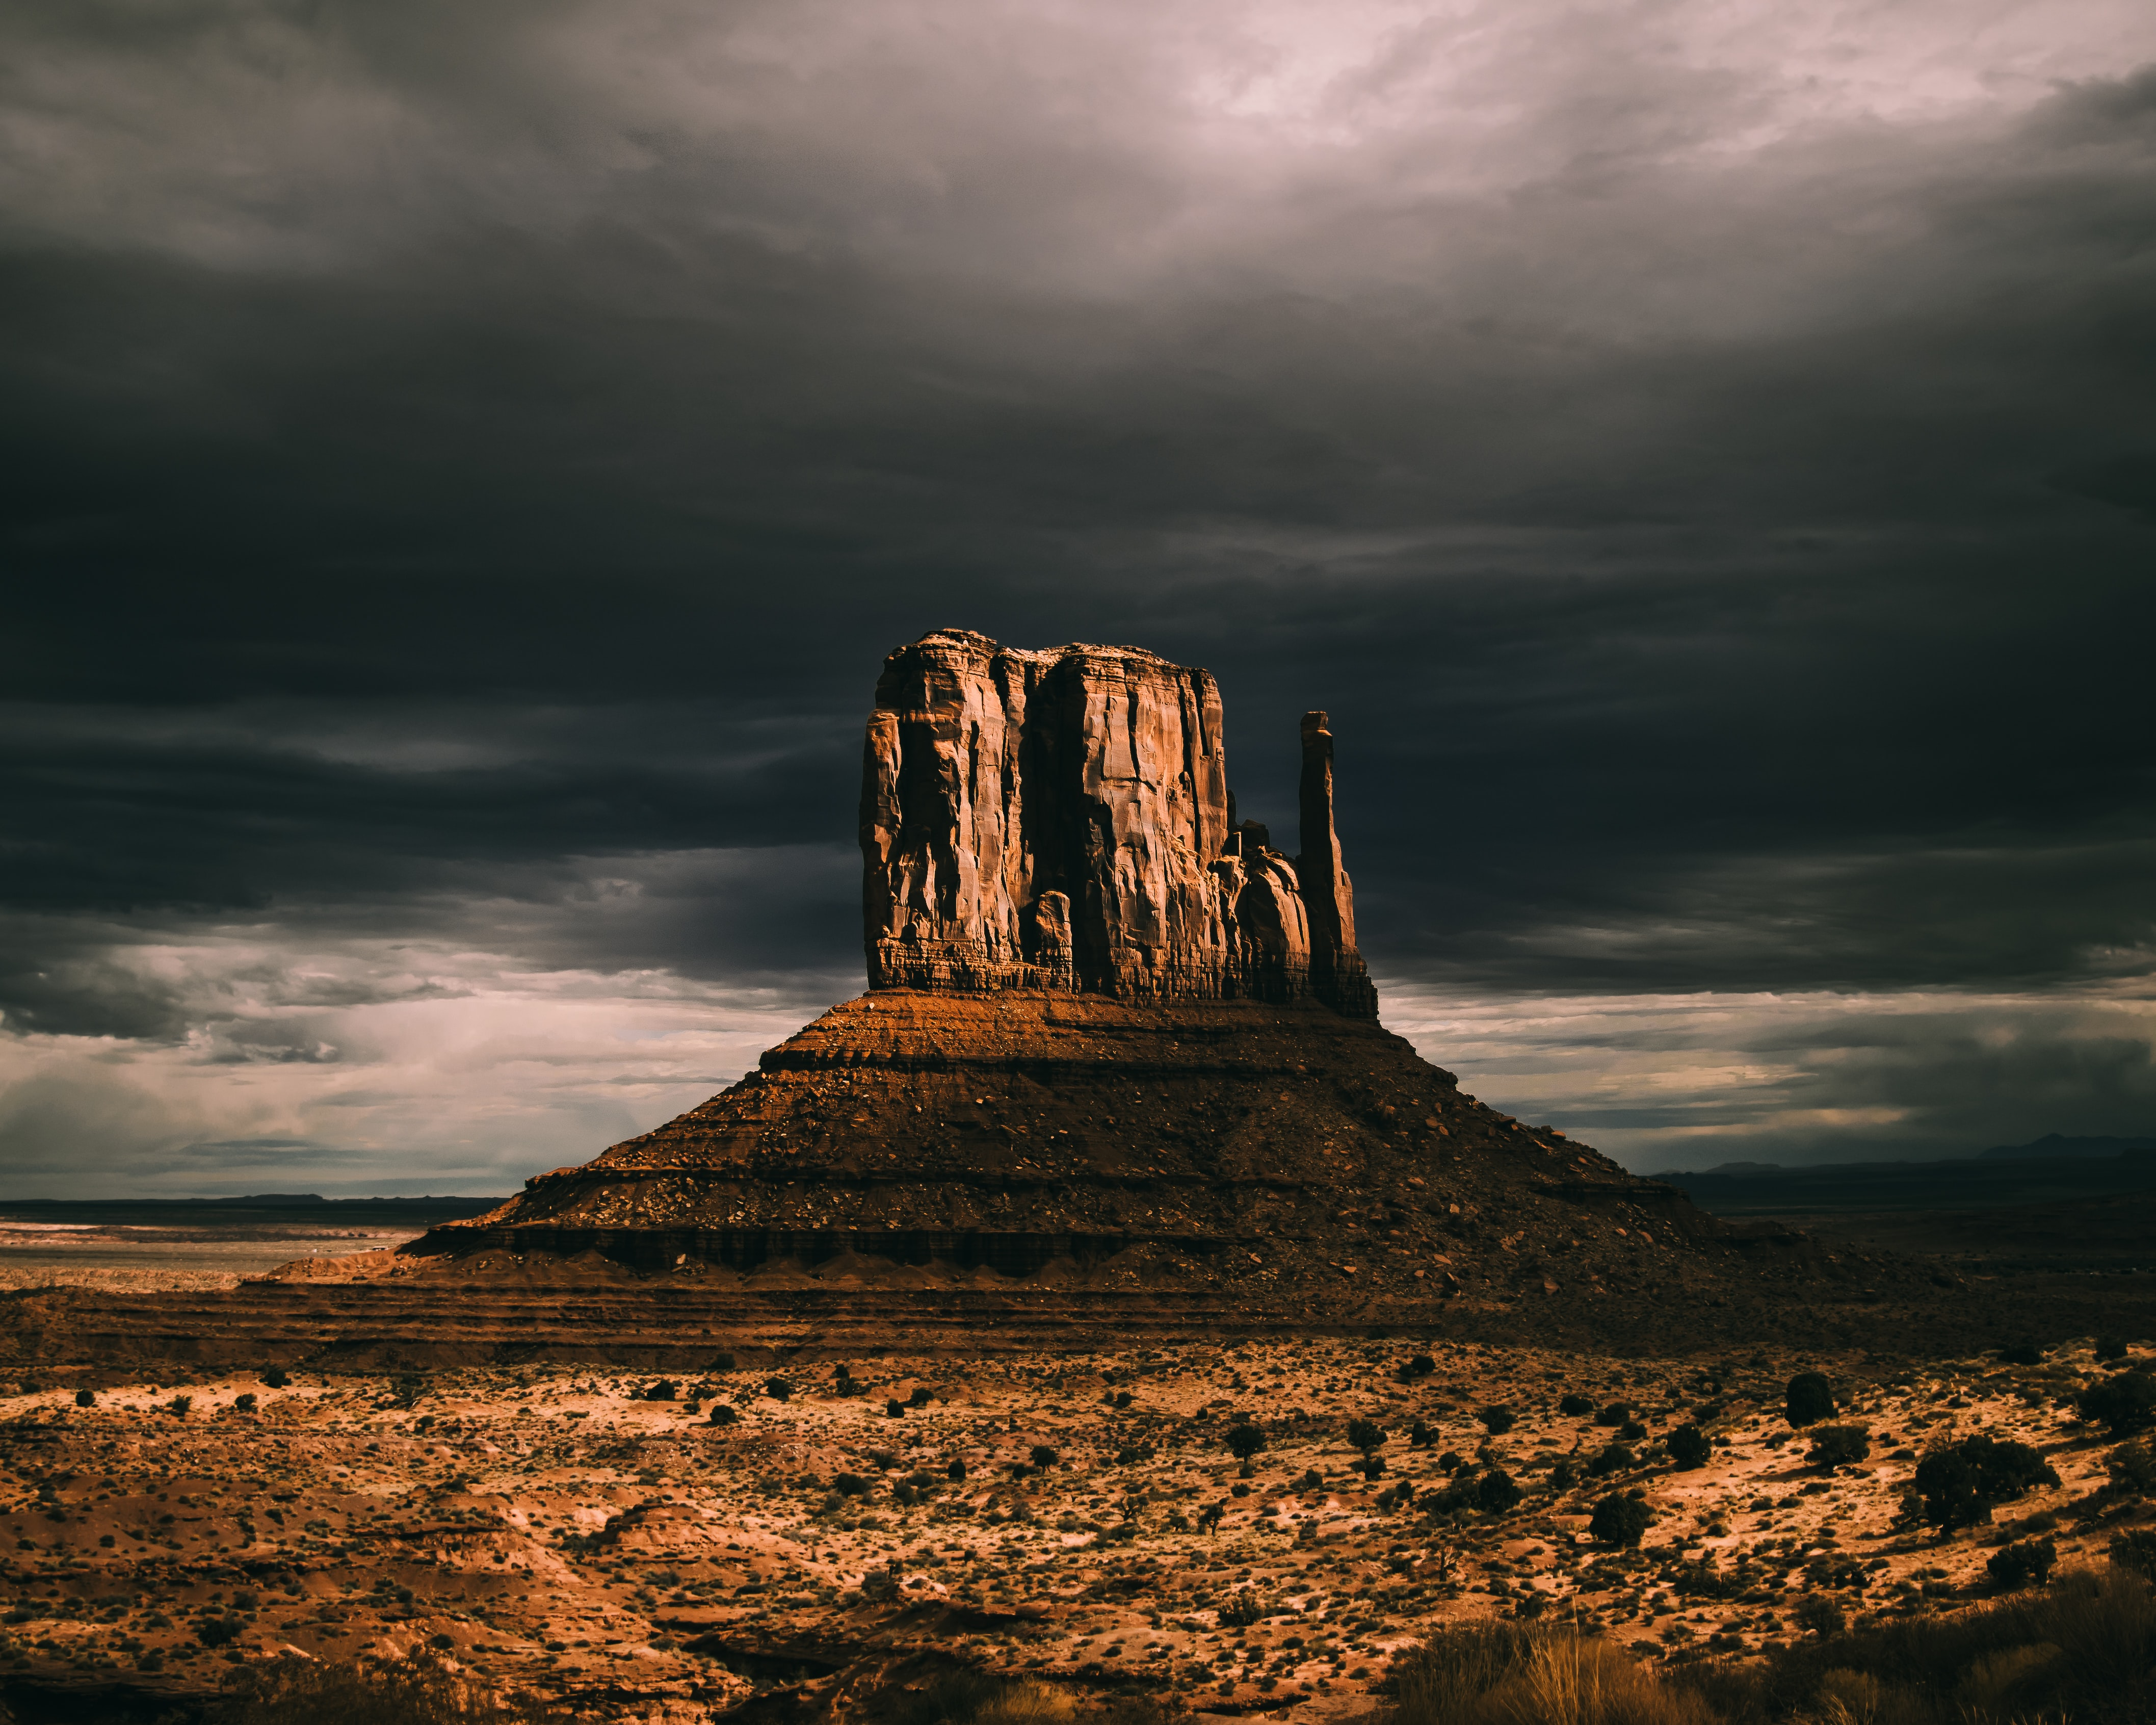 brown rock formation under cloudy sky